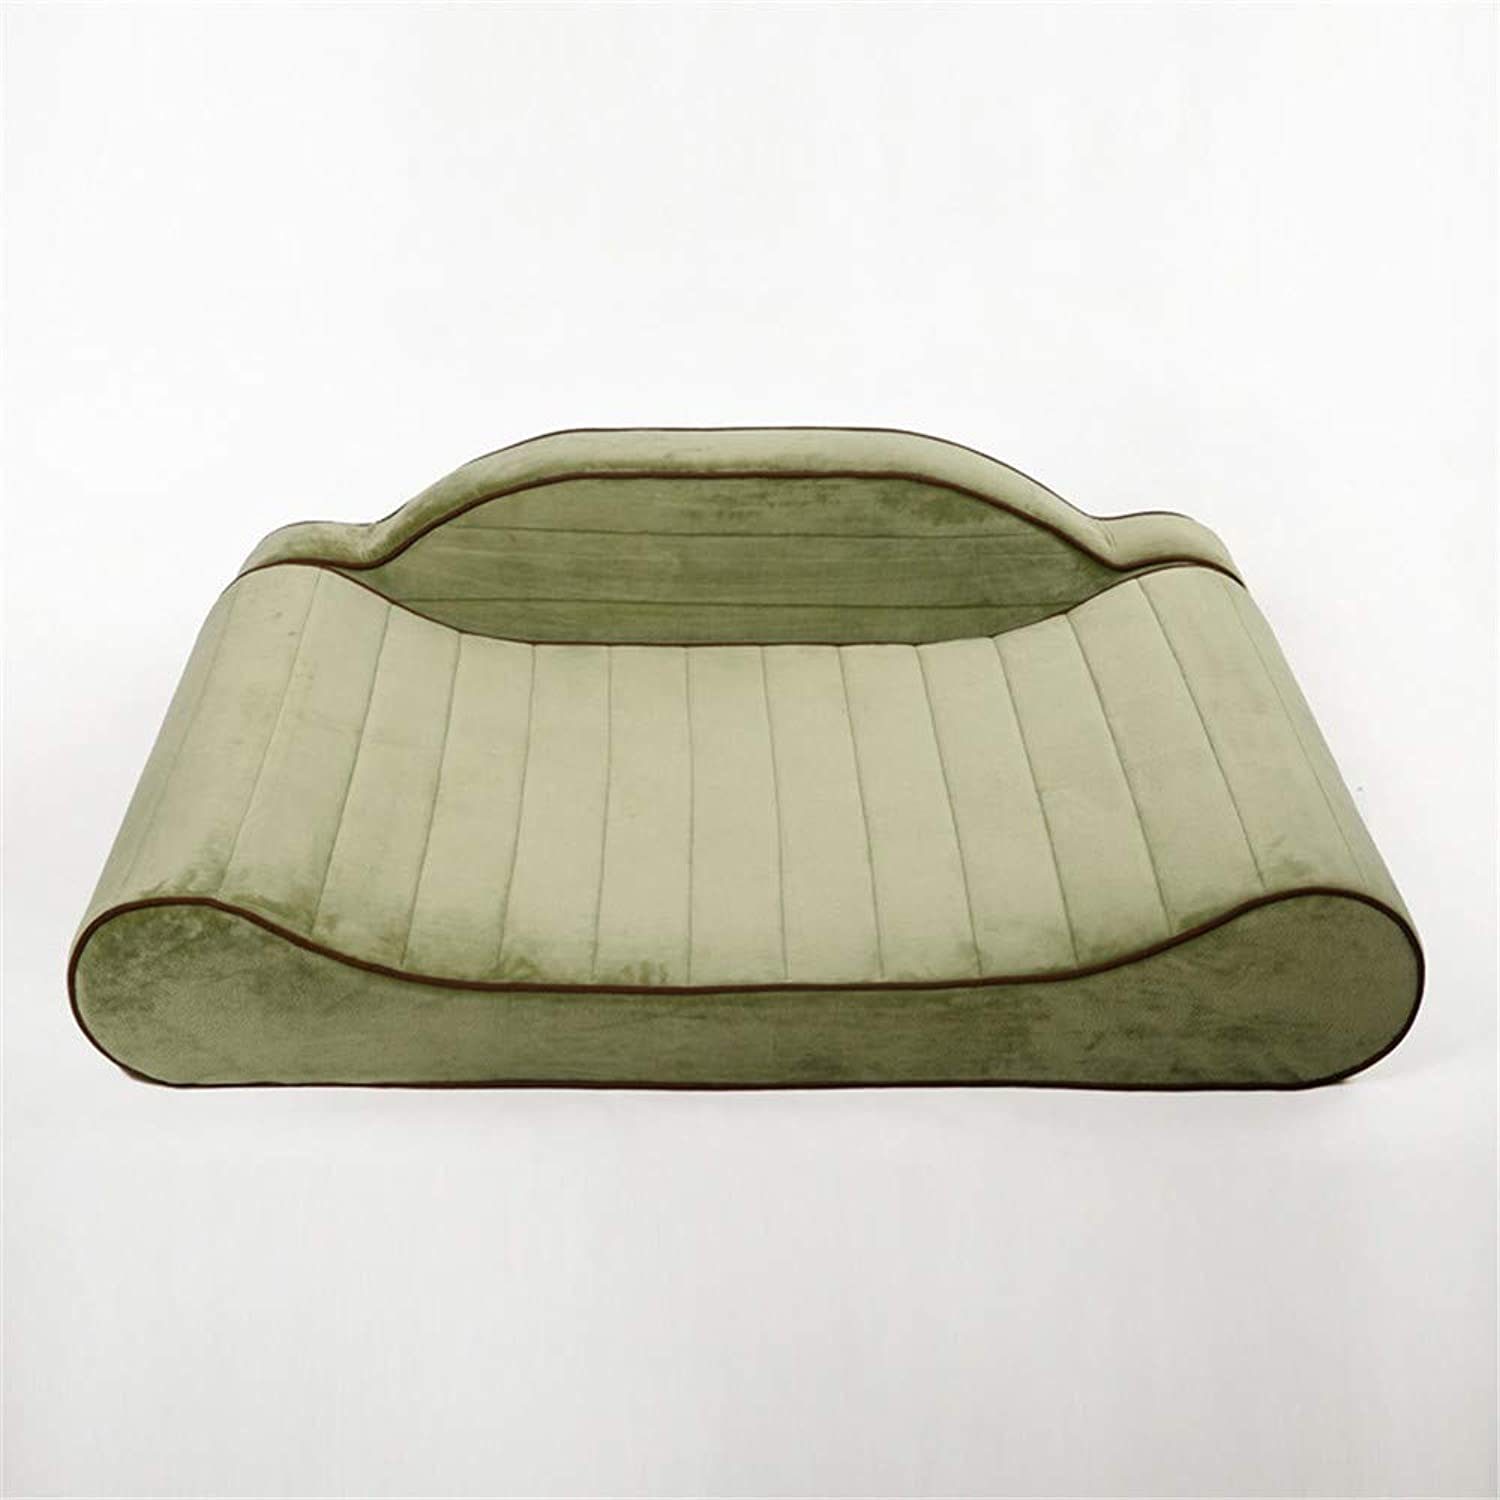 Husky Pet Bed, Dog House In Four Seasons, Large Dog In Pastoral Bed,Green Xl Number 120  84  27Cm